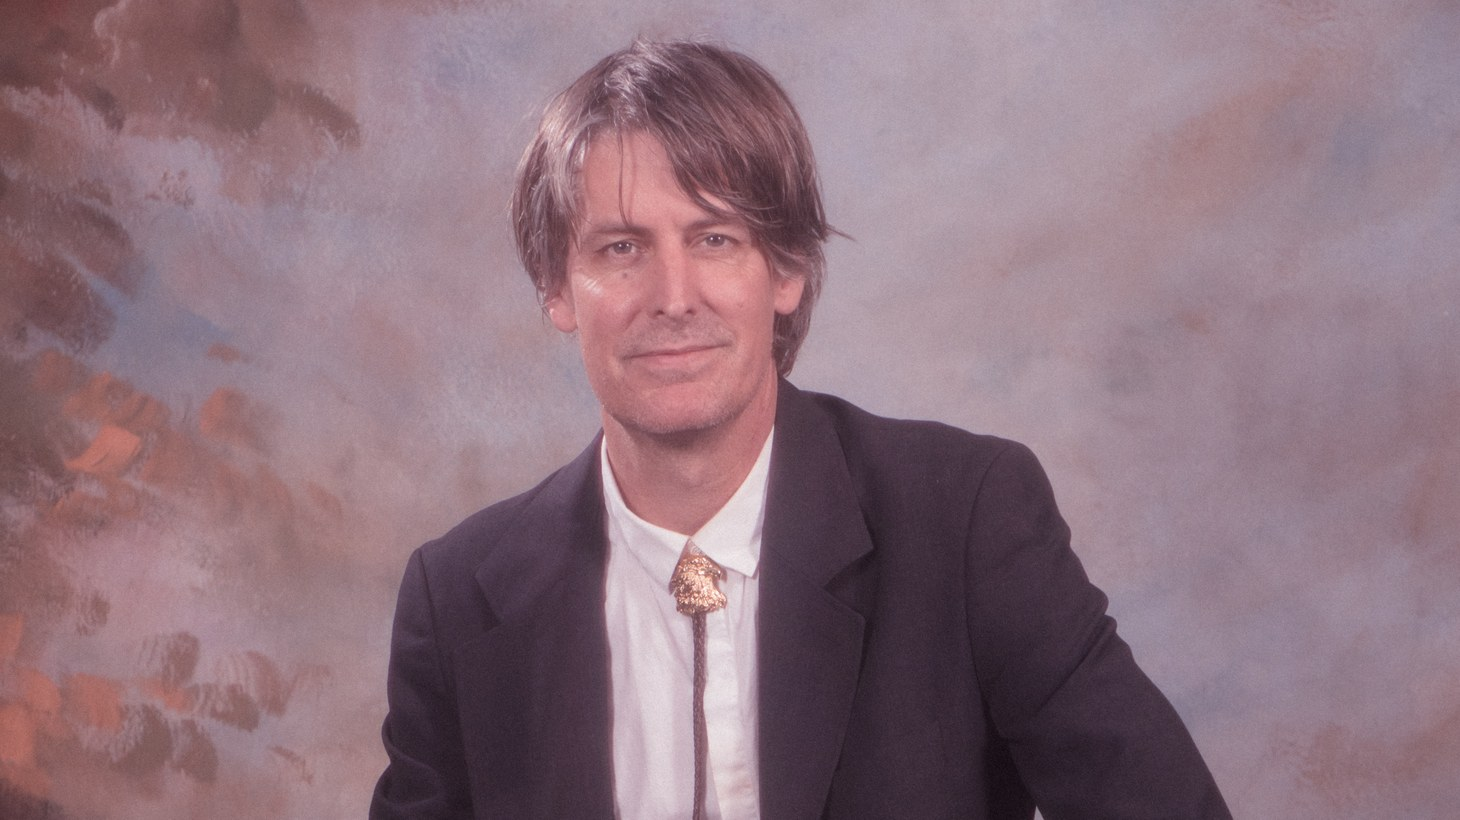 The King of Indie Rock, Stephen Malkmus, blindsided us with the news of a full-length electronic record. You won't find swirling instrumentals though, what you get is artfully crafted danceable melody with lyrics.